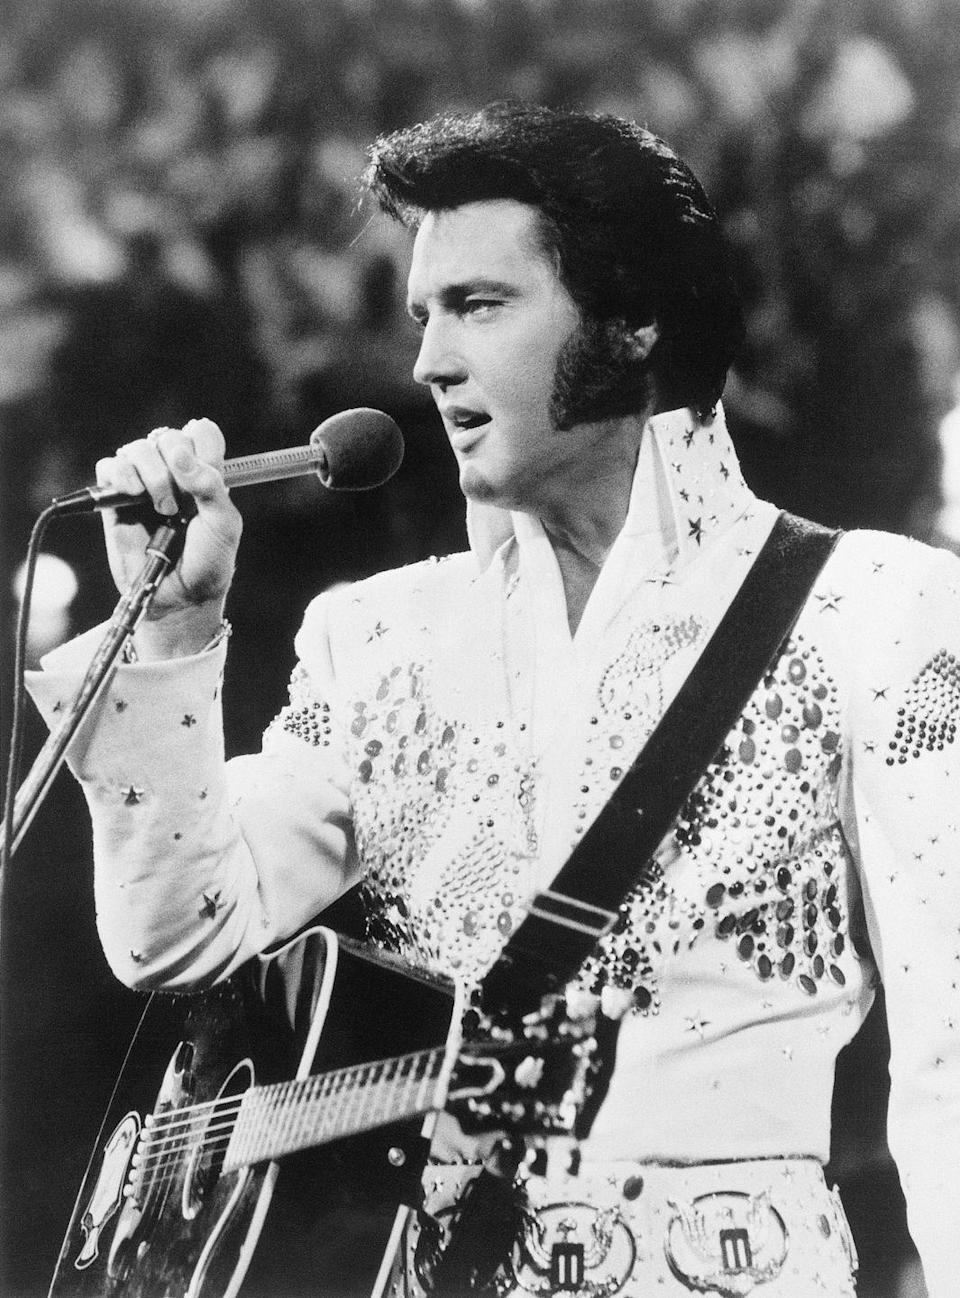 "<p>The singer lived on the property until his death on August 16, 1977, when he was <a href=""https://www.history.com/this-day-in-history/elvis-presley-dies"" rel=""nofollow noopener"" target=""_blank"" data-ylk=""slk:found unconscious inside Graceland"" class=""link rapid-noclick-resp"">found unconscious inside Graceland</a> after suffering a heart attack. He was only 42 years old. After his passing, Elvis's daughter, Lisa Marie, was named the <a href=""https://www.latimes.com/archives/la-xpm-1989-06-11-tm-2866-story.html"" rel=""nofollow noopener"" target=""_blank"" data-ylk=""slk:sole beneficiary of the estate"" class=""link rapid-noclick-resp"">sole beneficiary of the estate</a>.</p>"